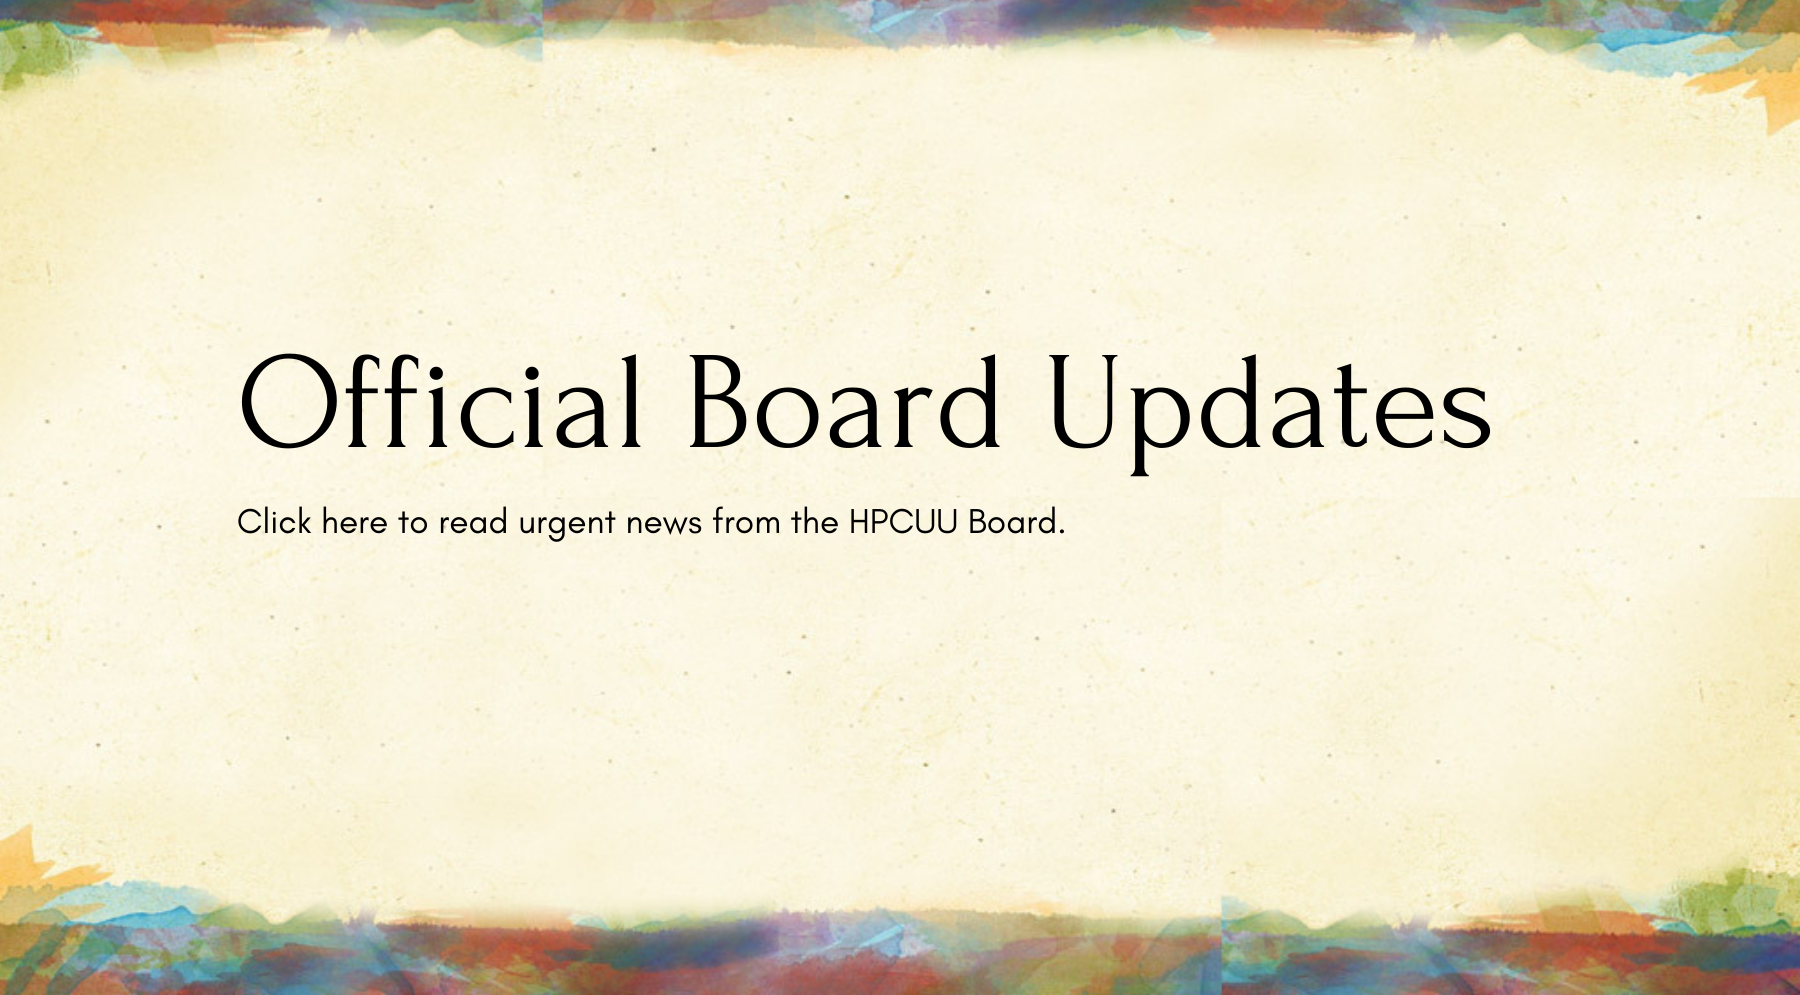 Official Board Updates